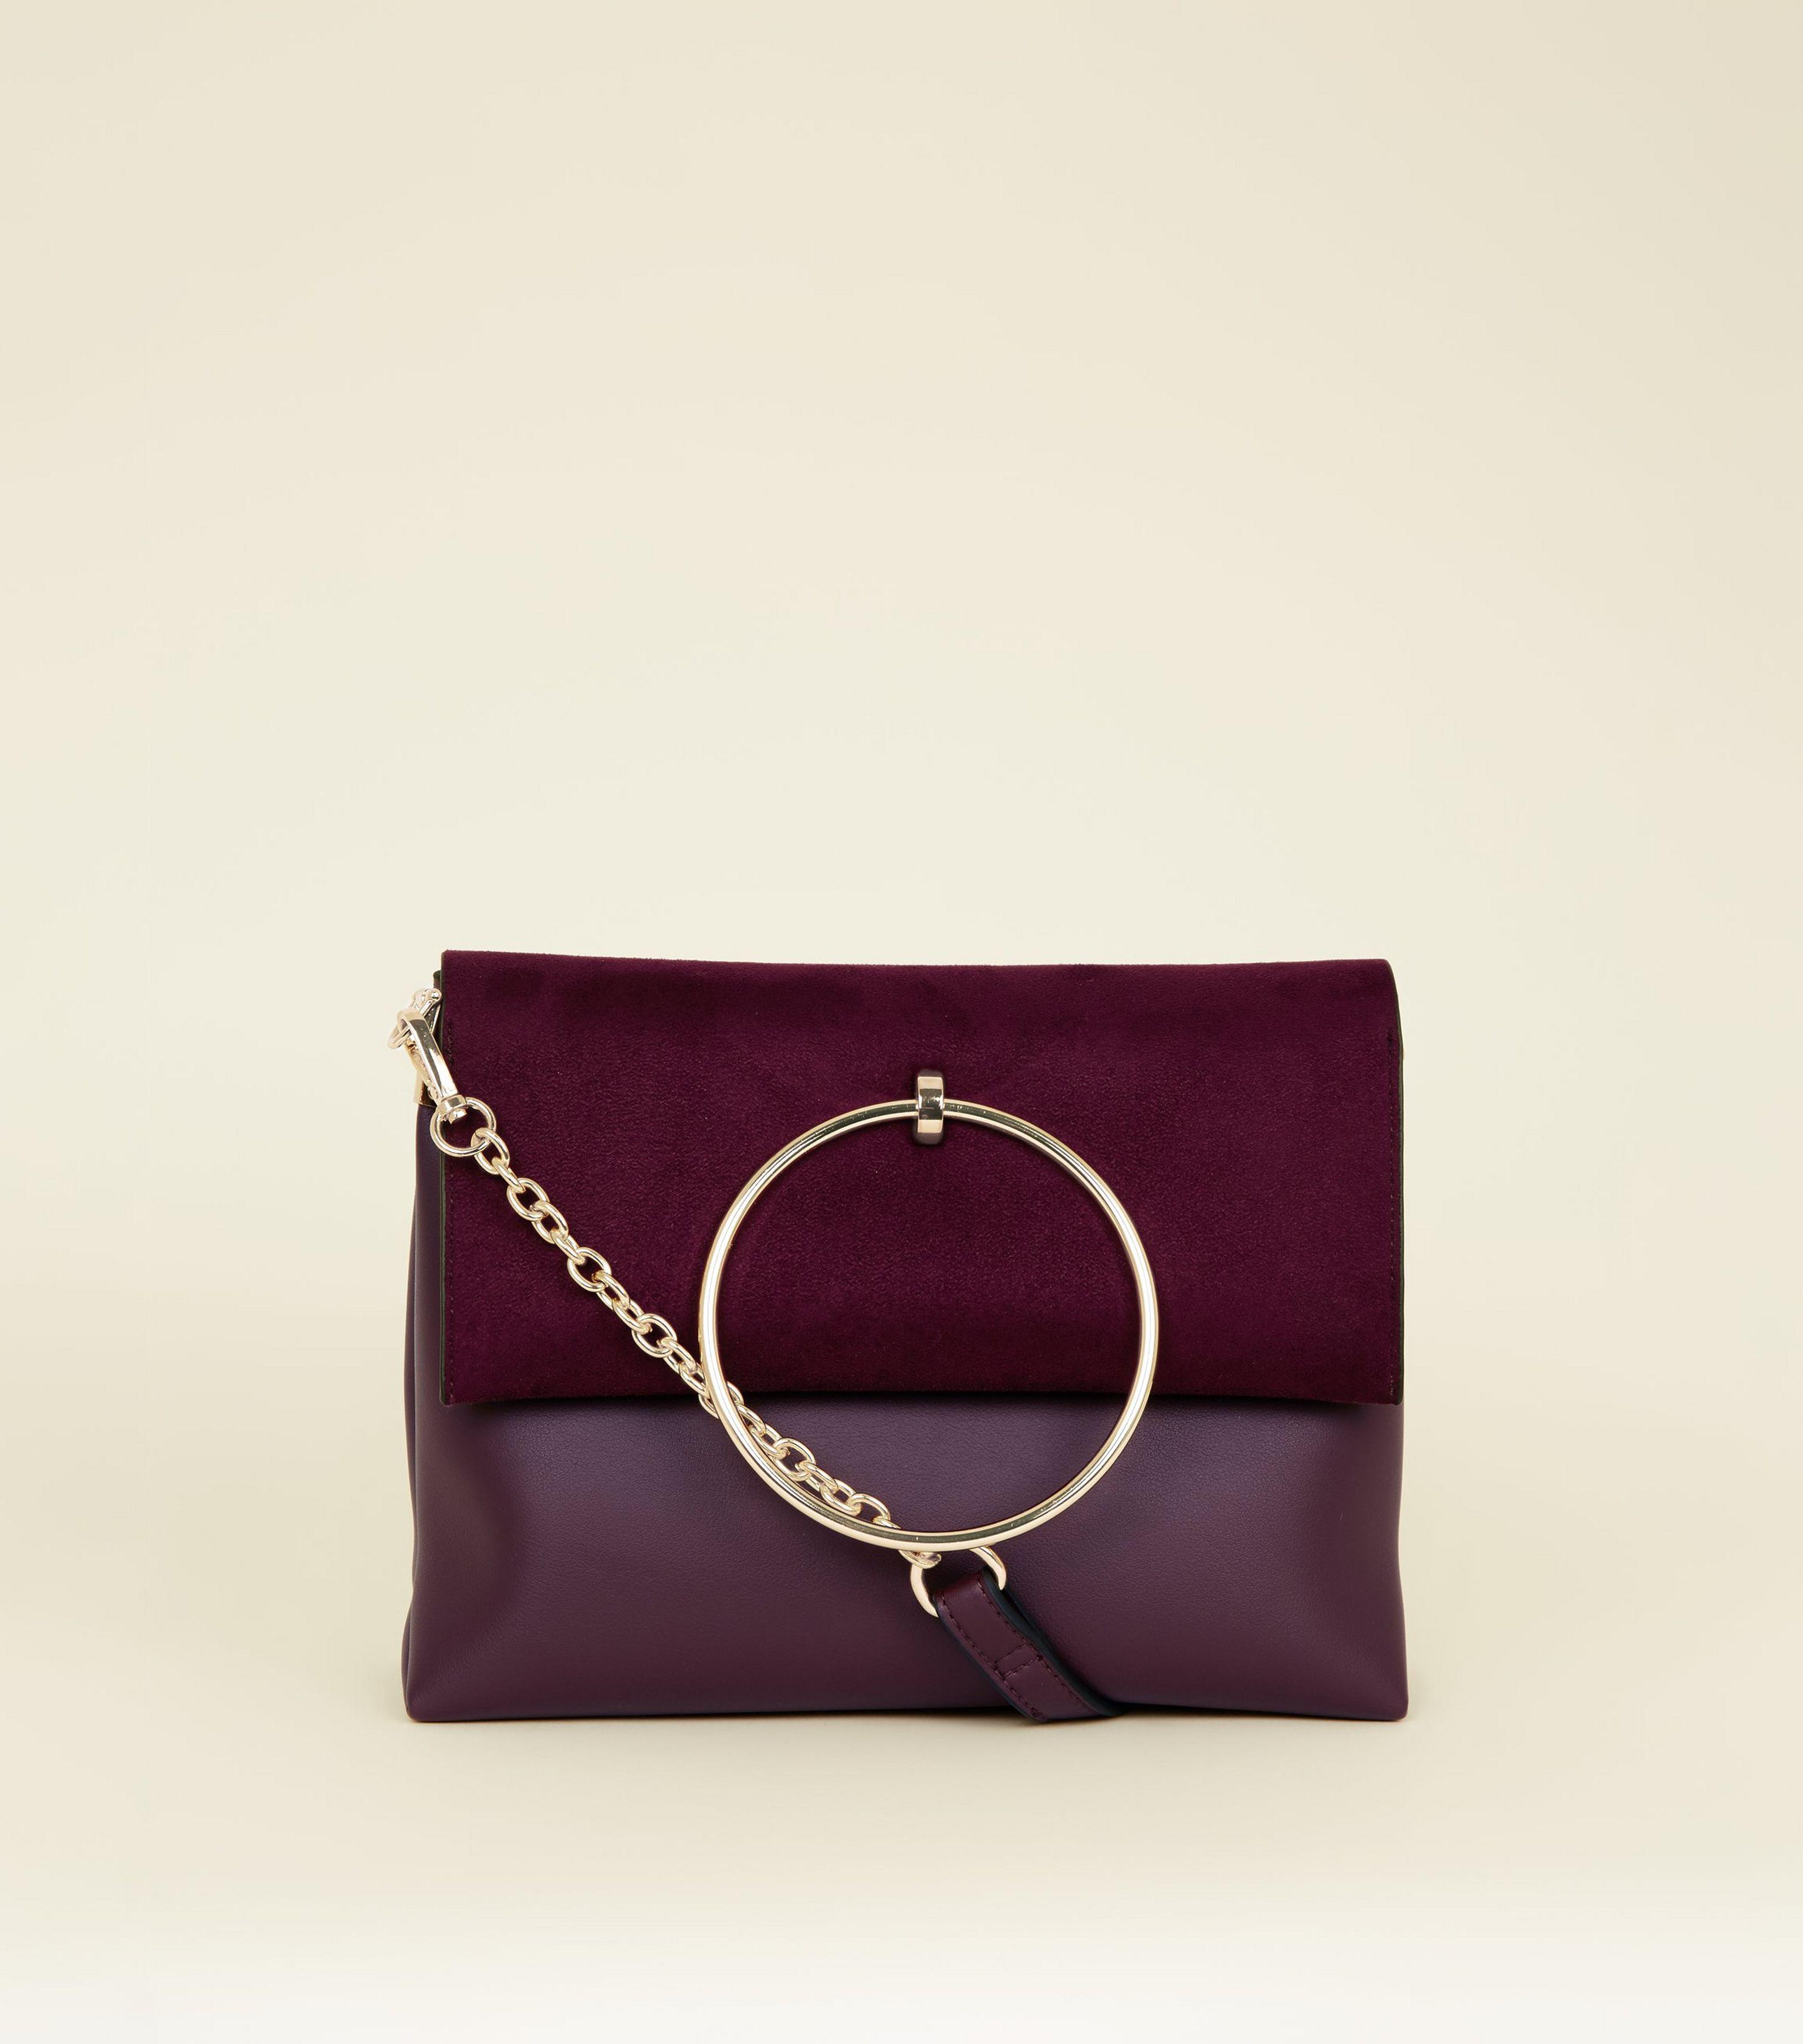 1bf1274655e9 New Look Burgundy Leather-look Ring Handle Shoulder Bag in Purple - Lyst